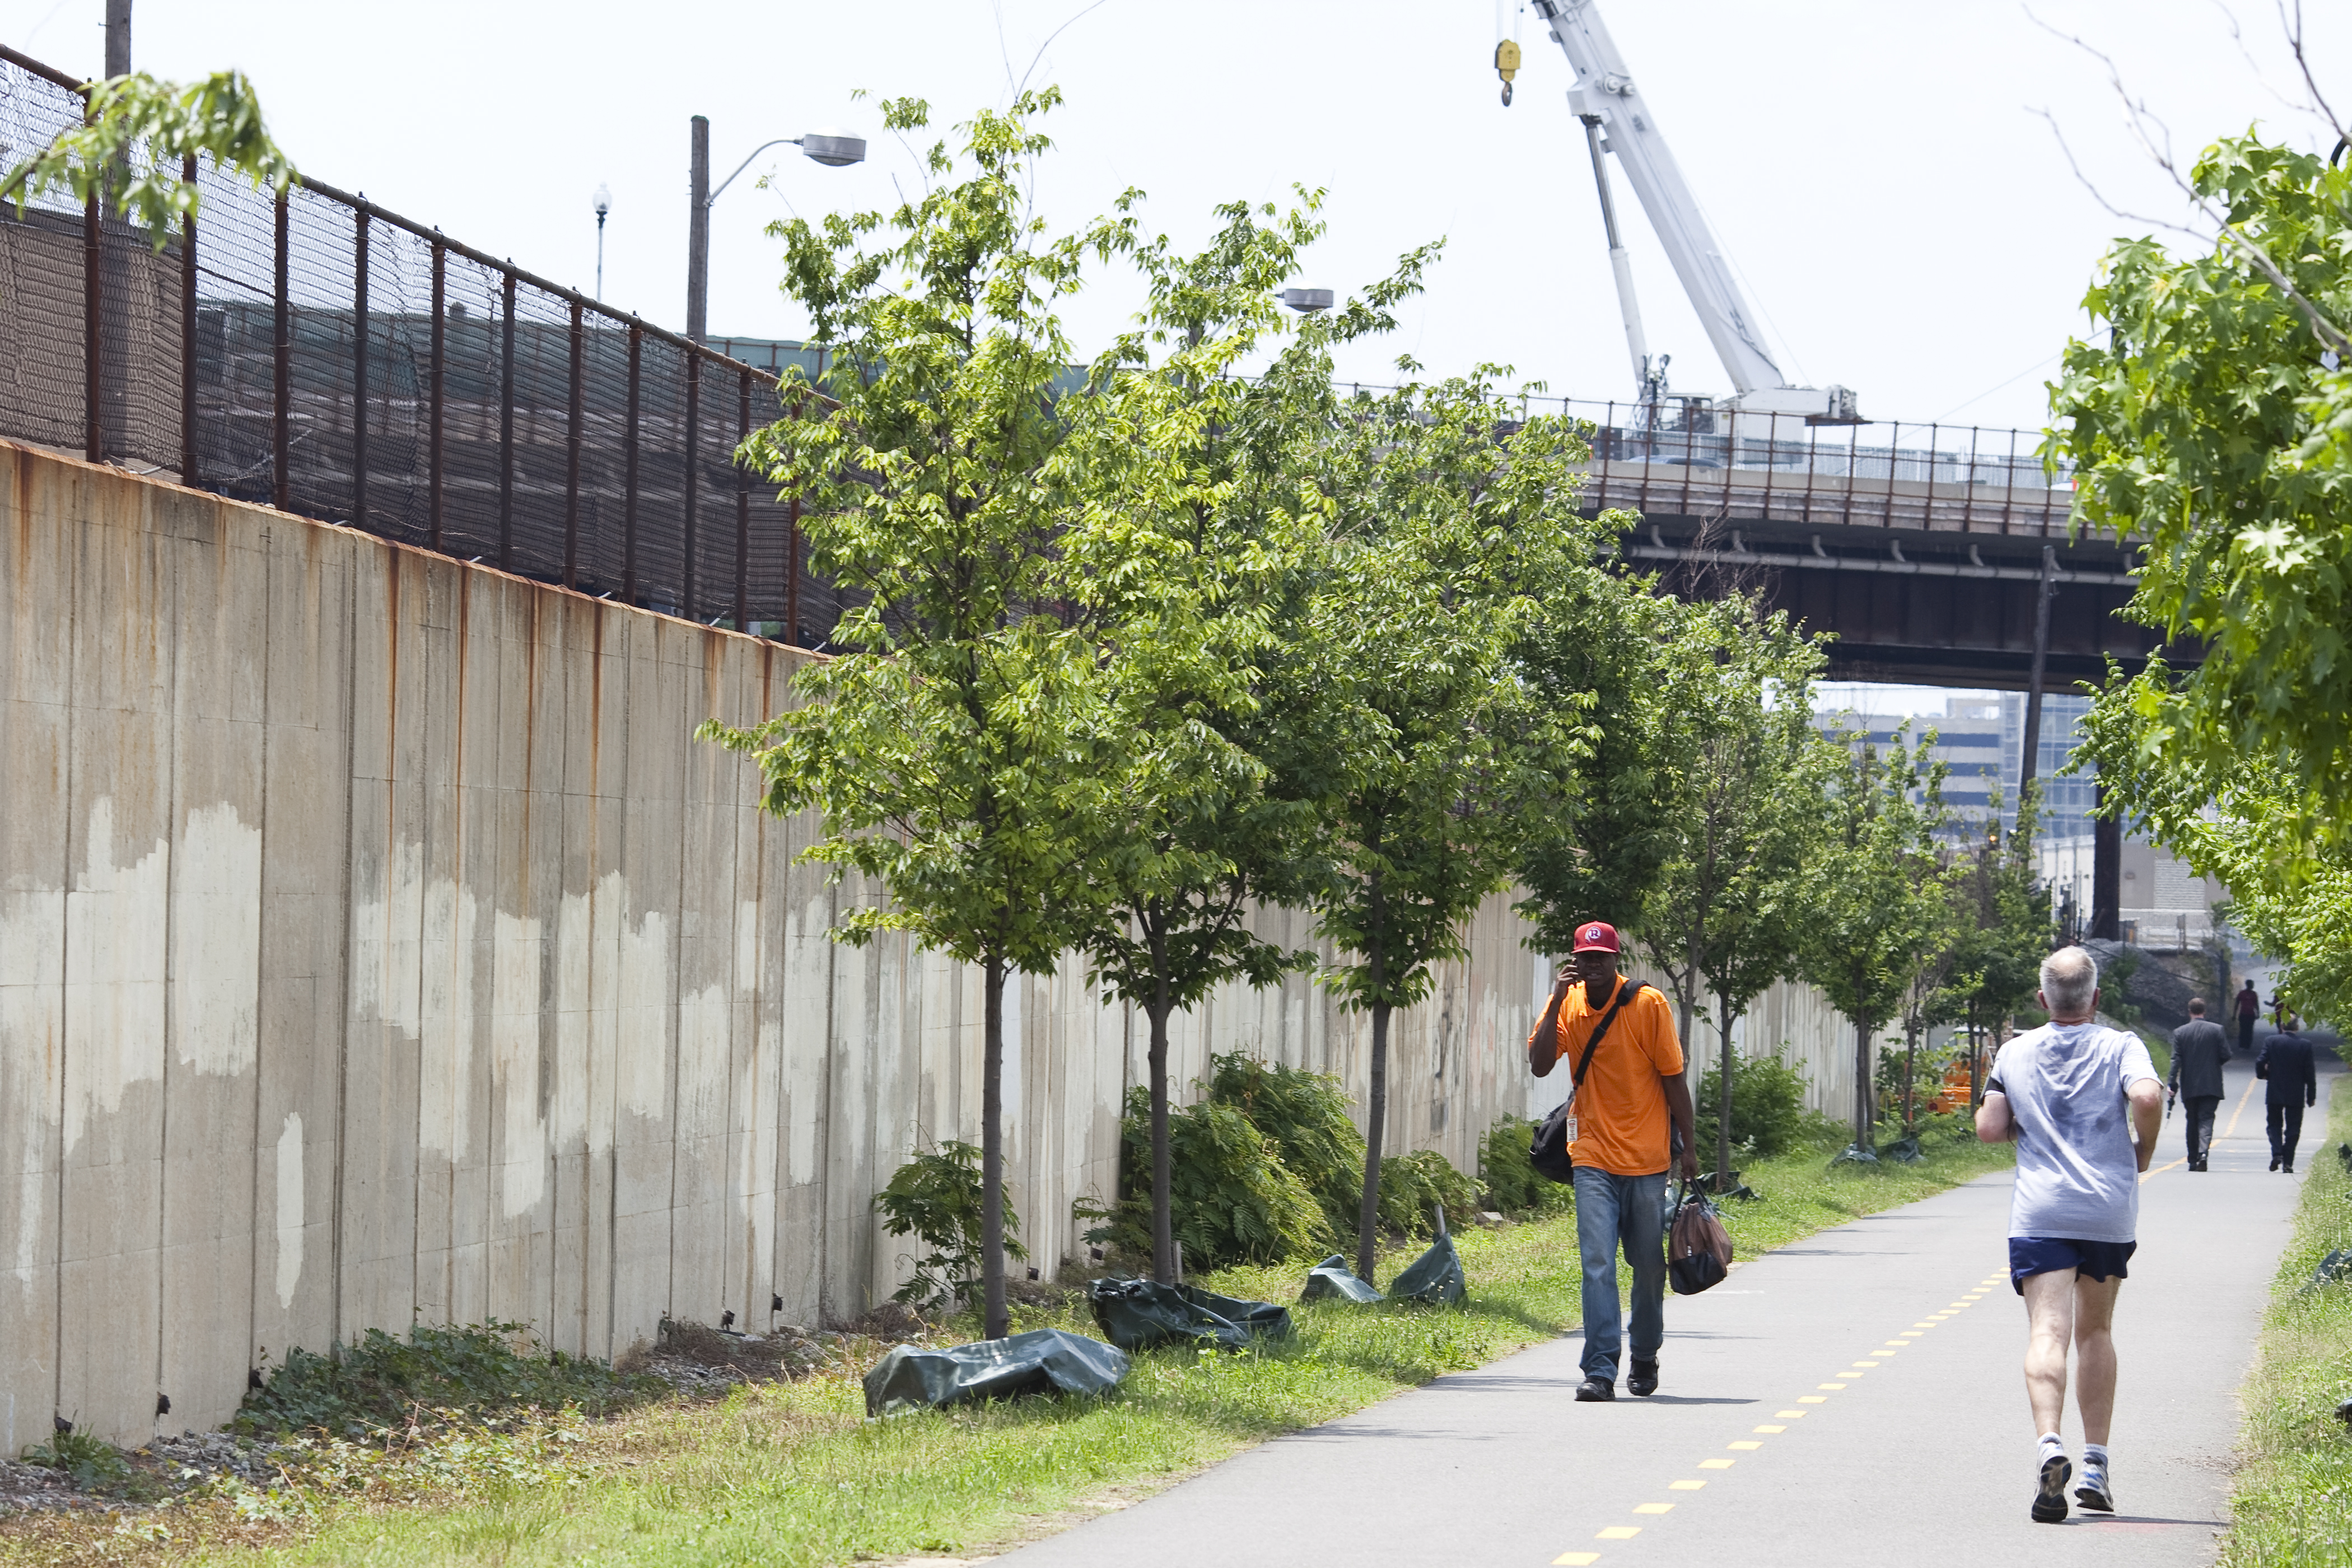 Pedestrians along a multiuse trail surrounded by trees and elevated train tracks.